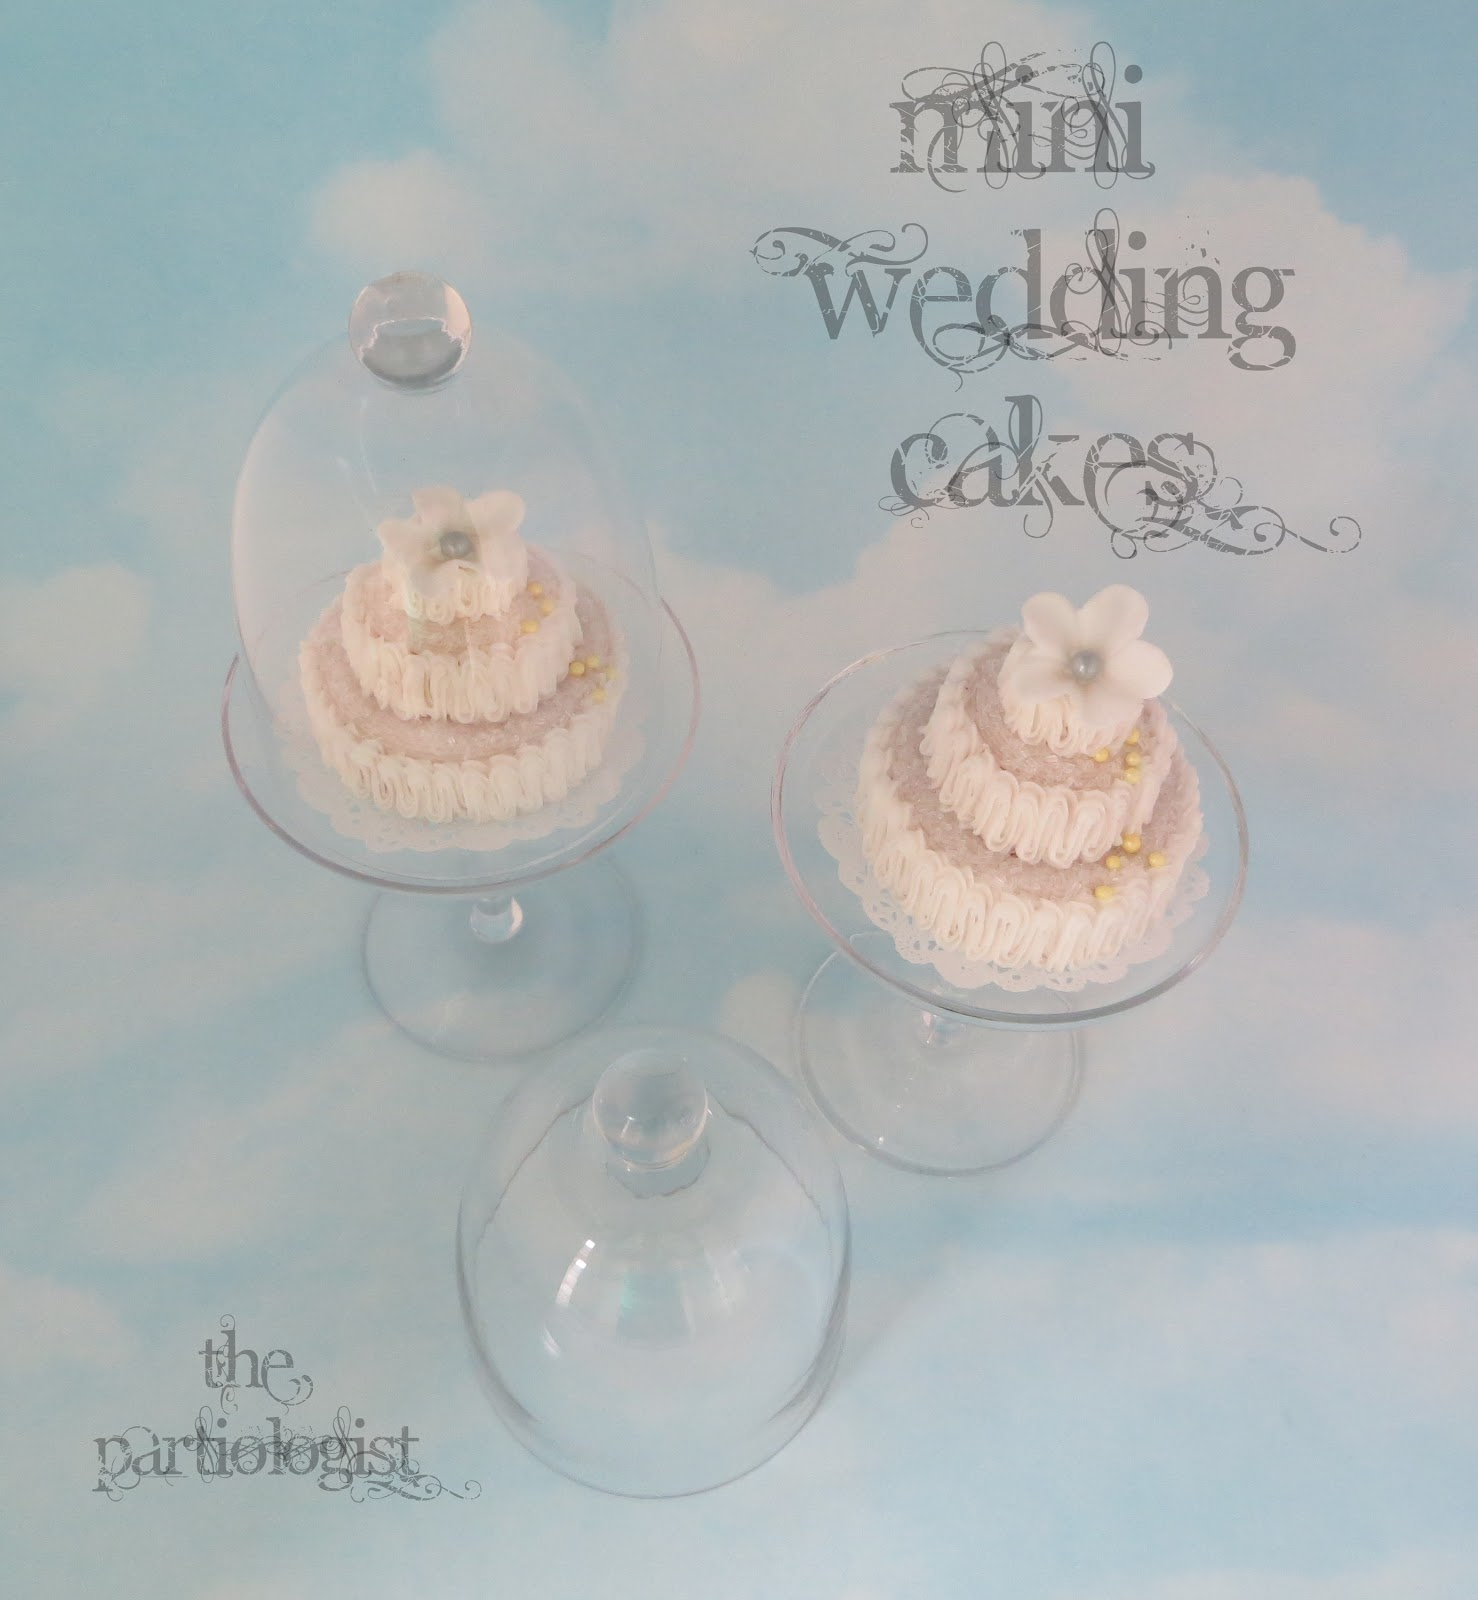 The Partiologist Mini Tiered Wedding Cake Tutorial - Mini Wedding Cake Mold